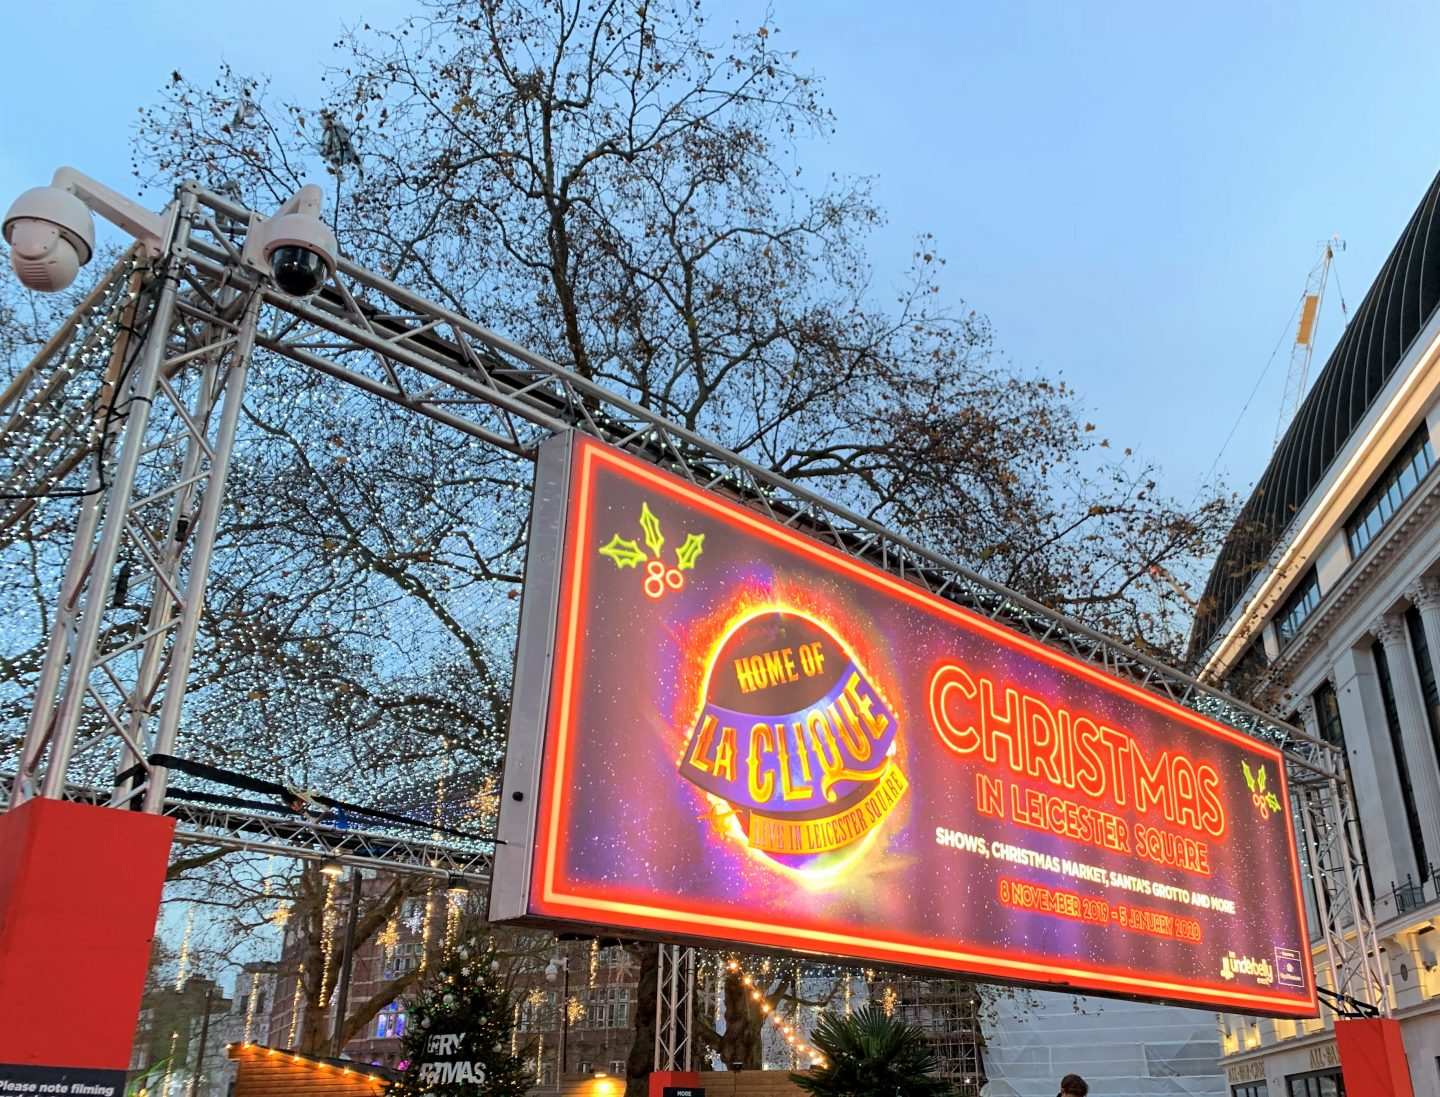 Leicester Square for Christmas